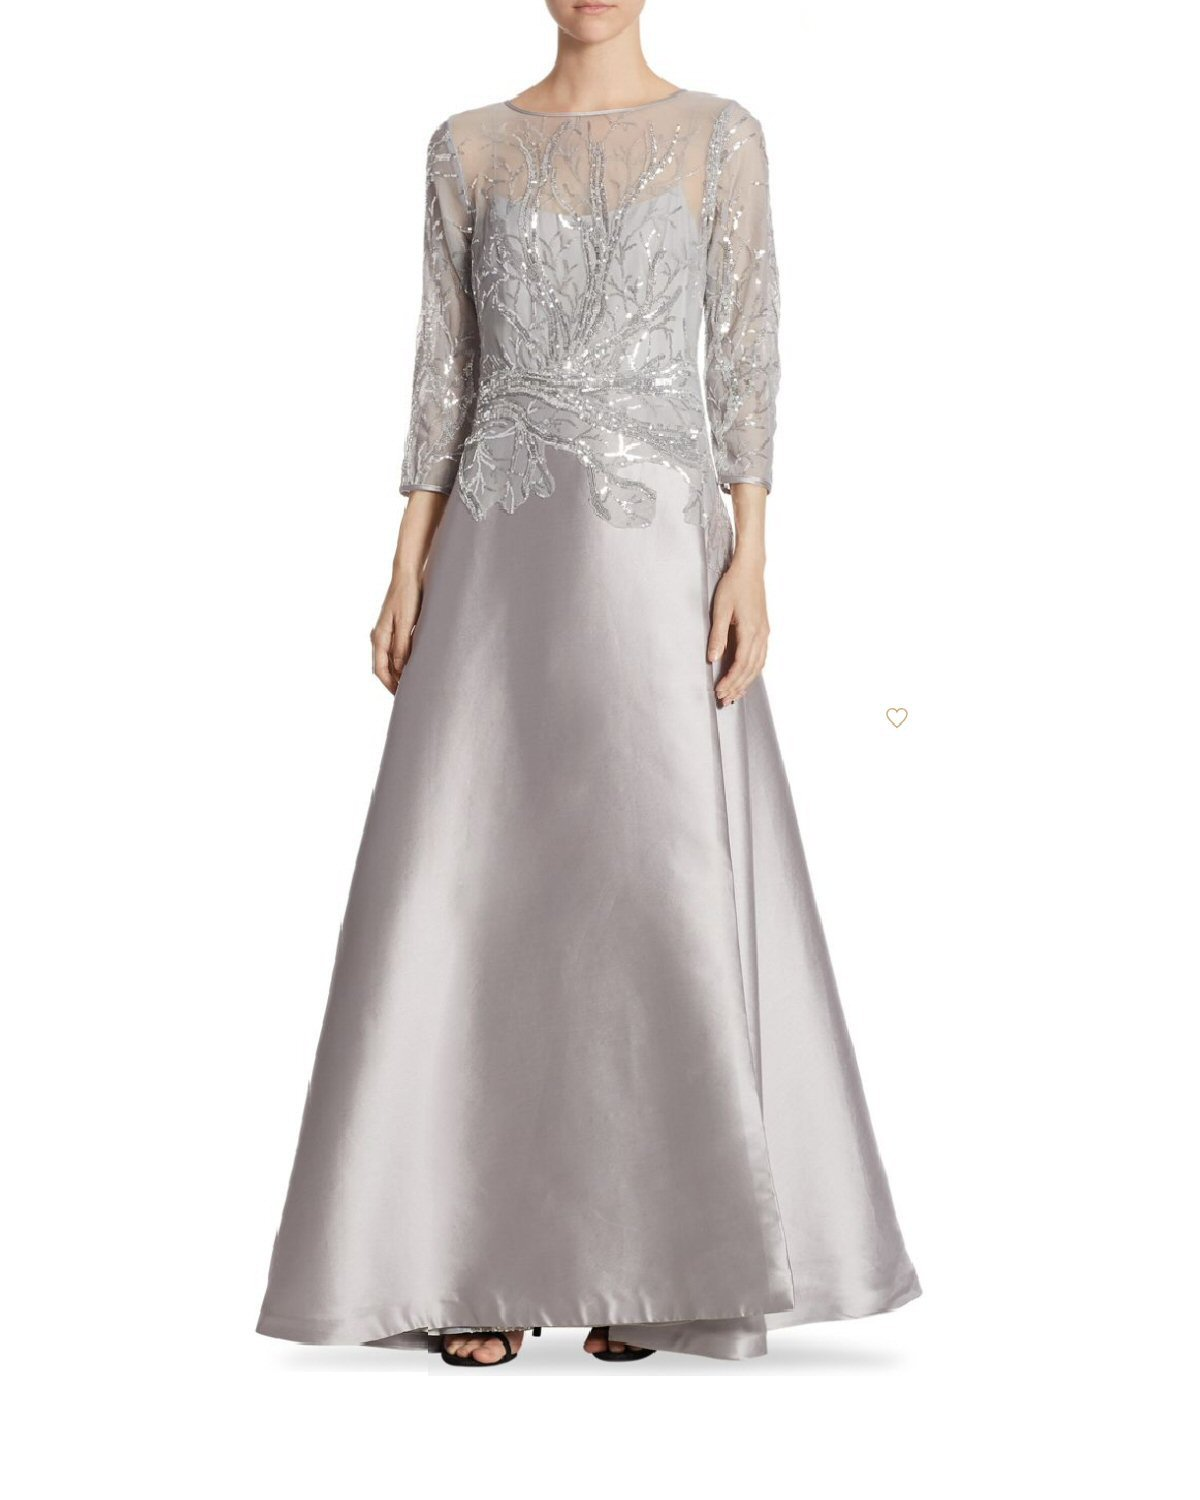 Details about Teri Jon Sequined Top 3 4 Sleeve Evening Gown Dress Silver 8 dc742e337